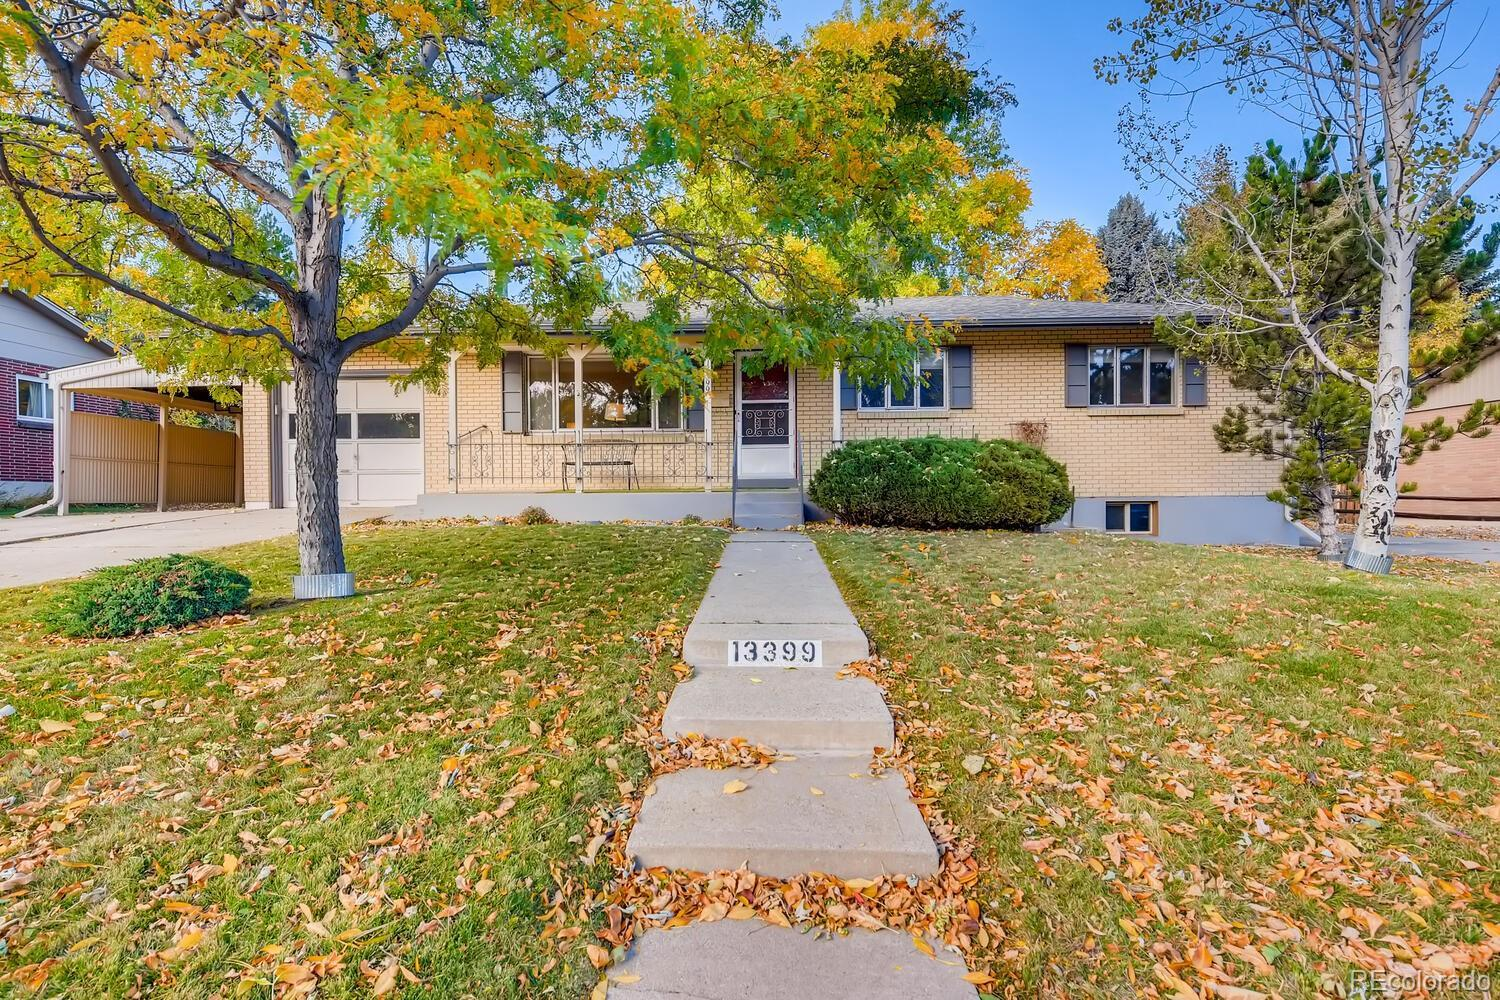 13399 W 23rd Place, Golden, CO 80401 - #: 5819773